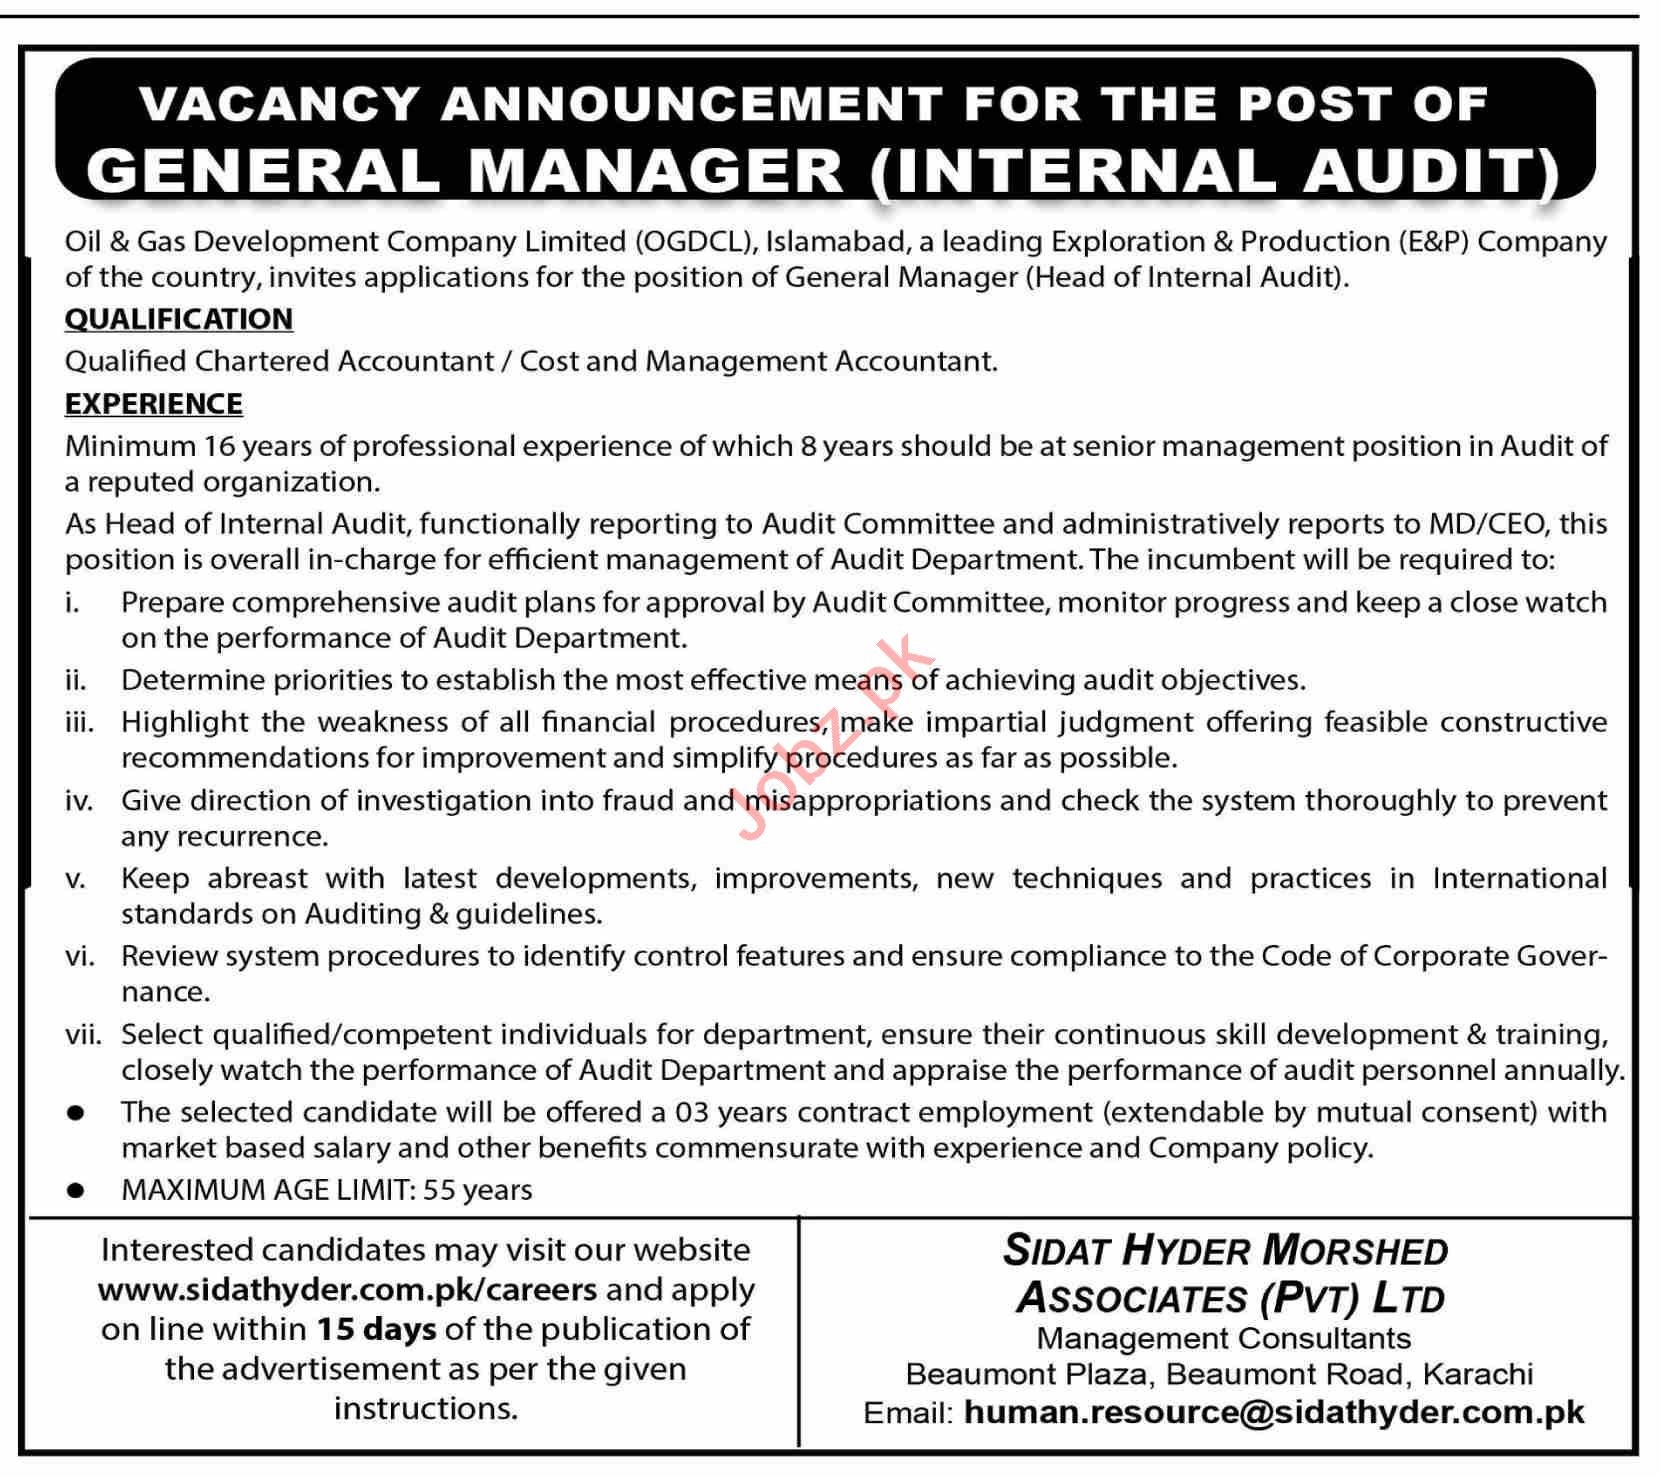 General Manager Internal Audit Jobs 2021 in OGDCL Islamabad